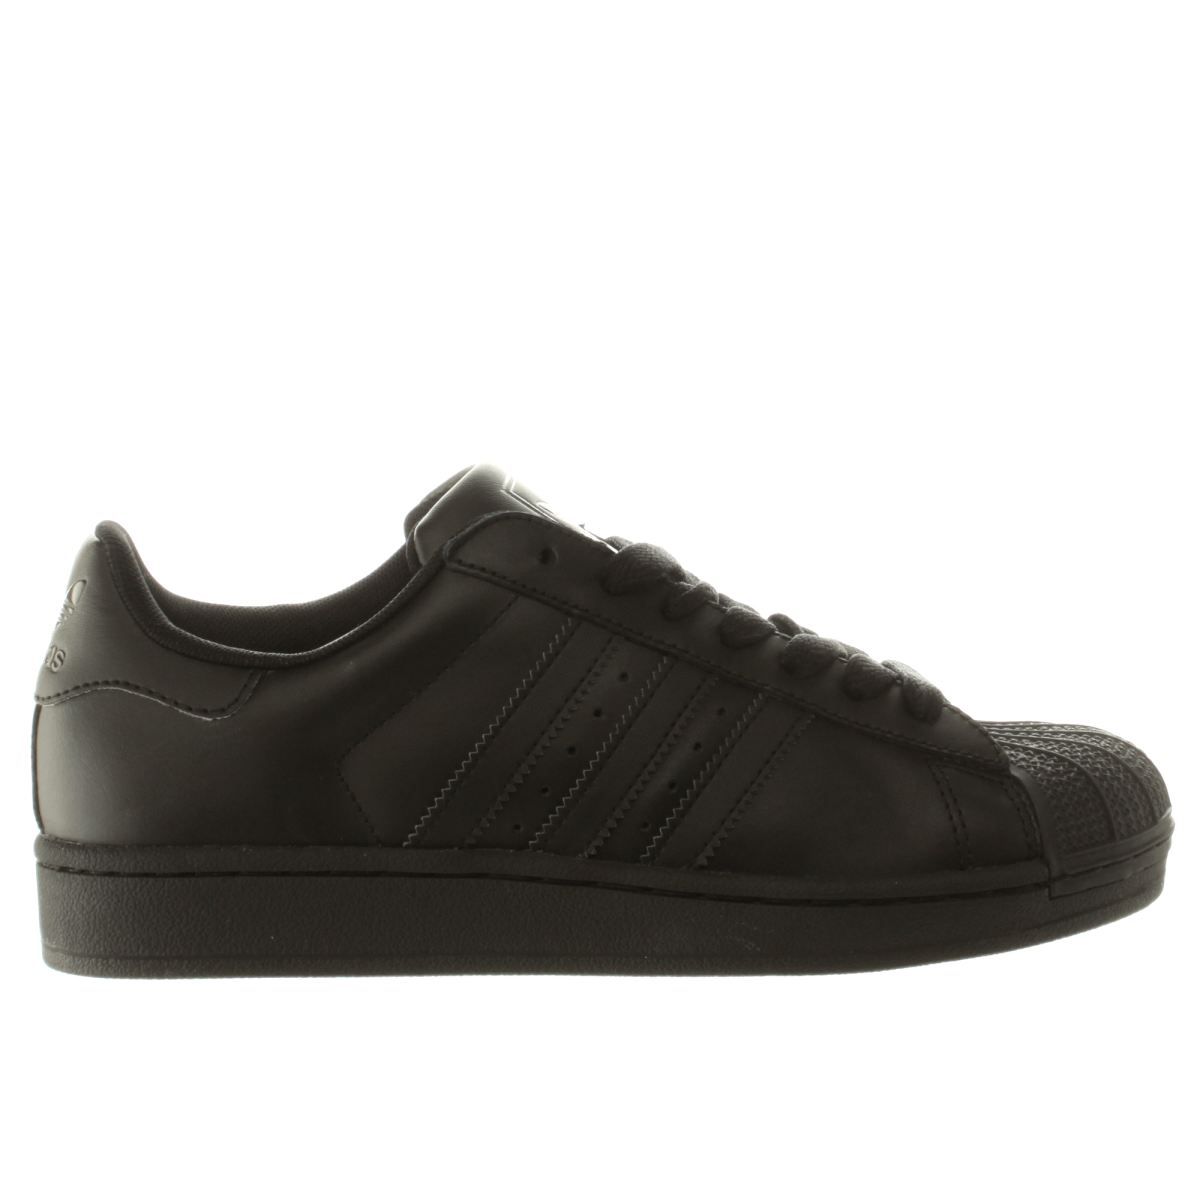 Adidas Superstar Black